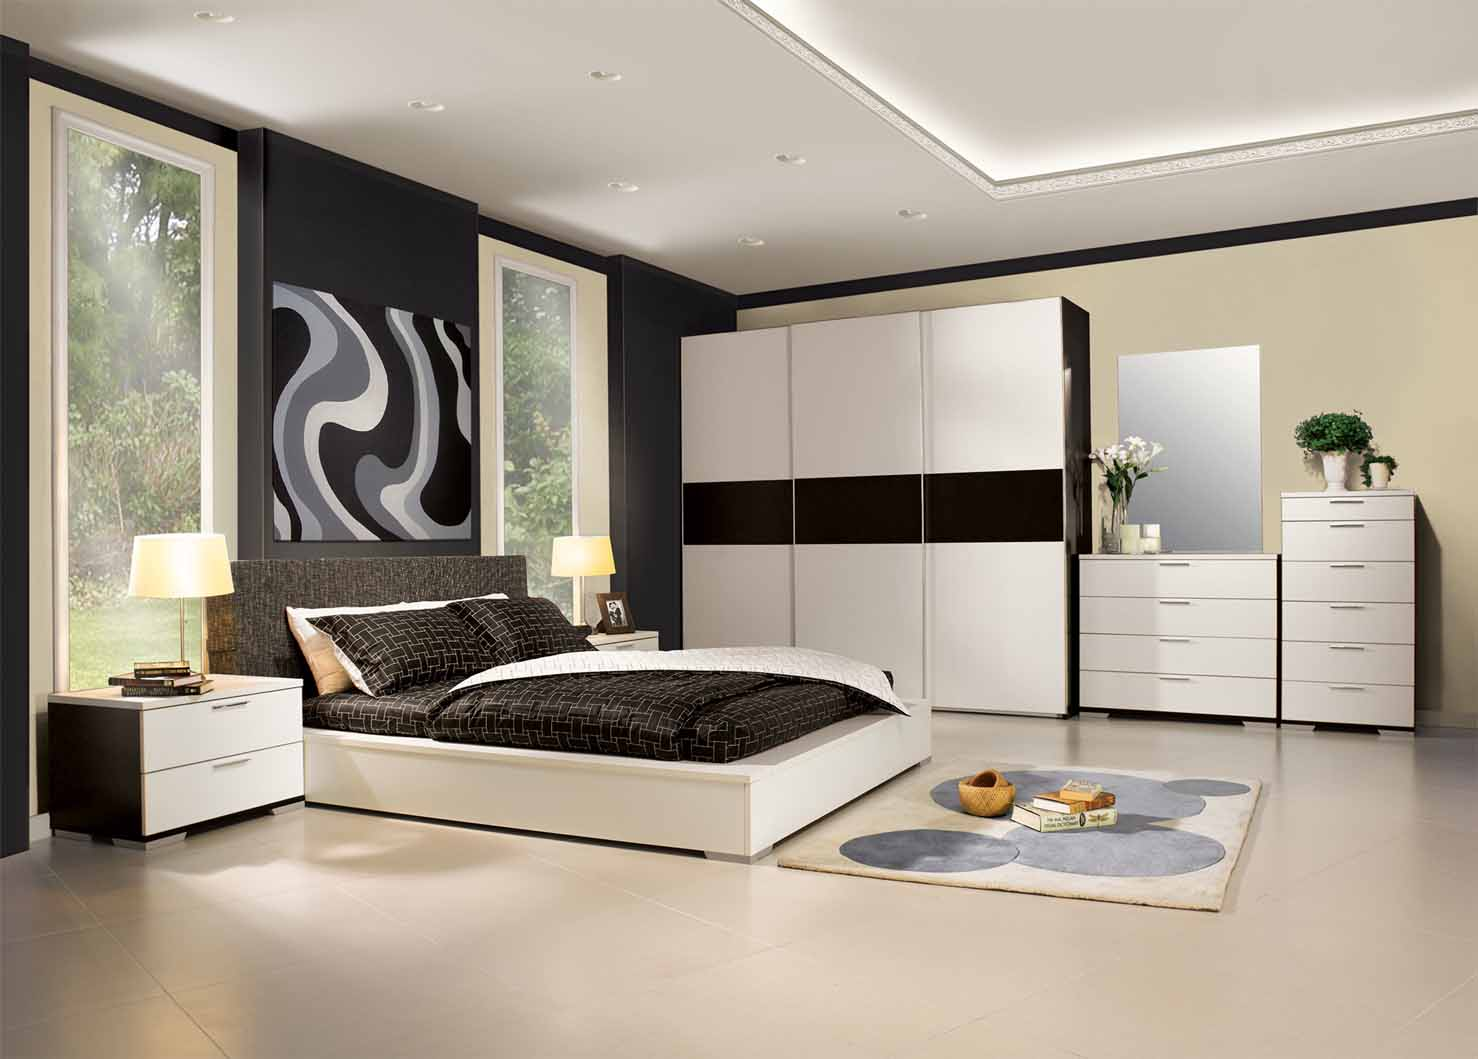 Awesome bedrooms ideas pictures 2014 decorating bedrooms for Photos of bedroom designs